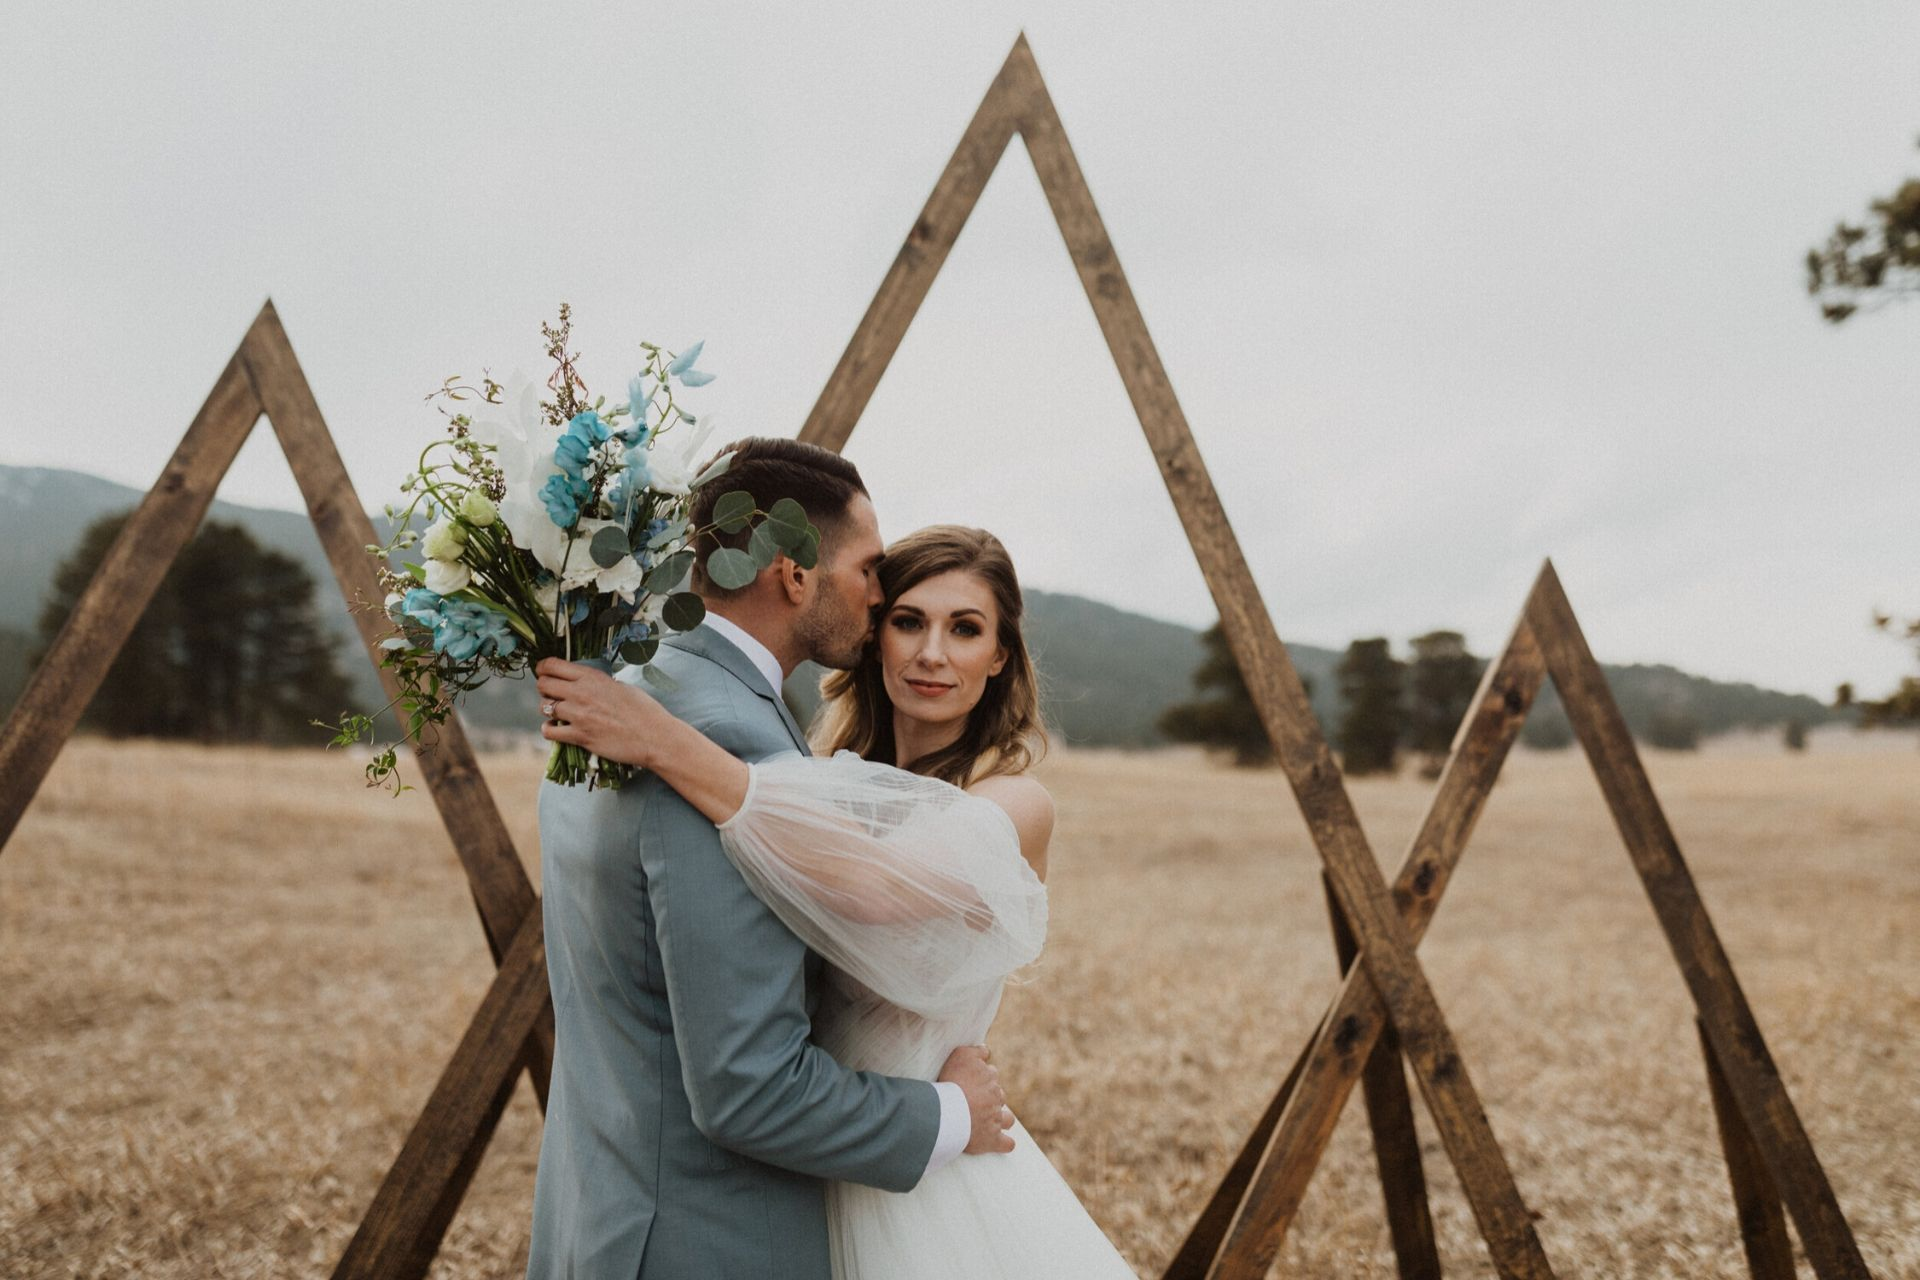 Renewing vows on a budget